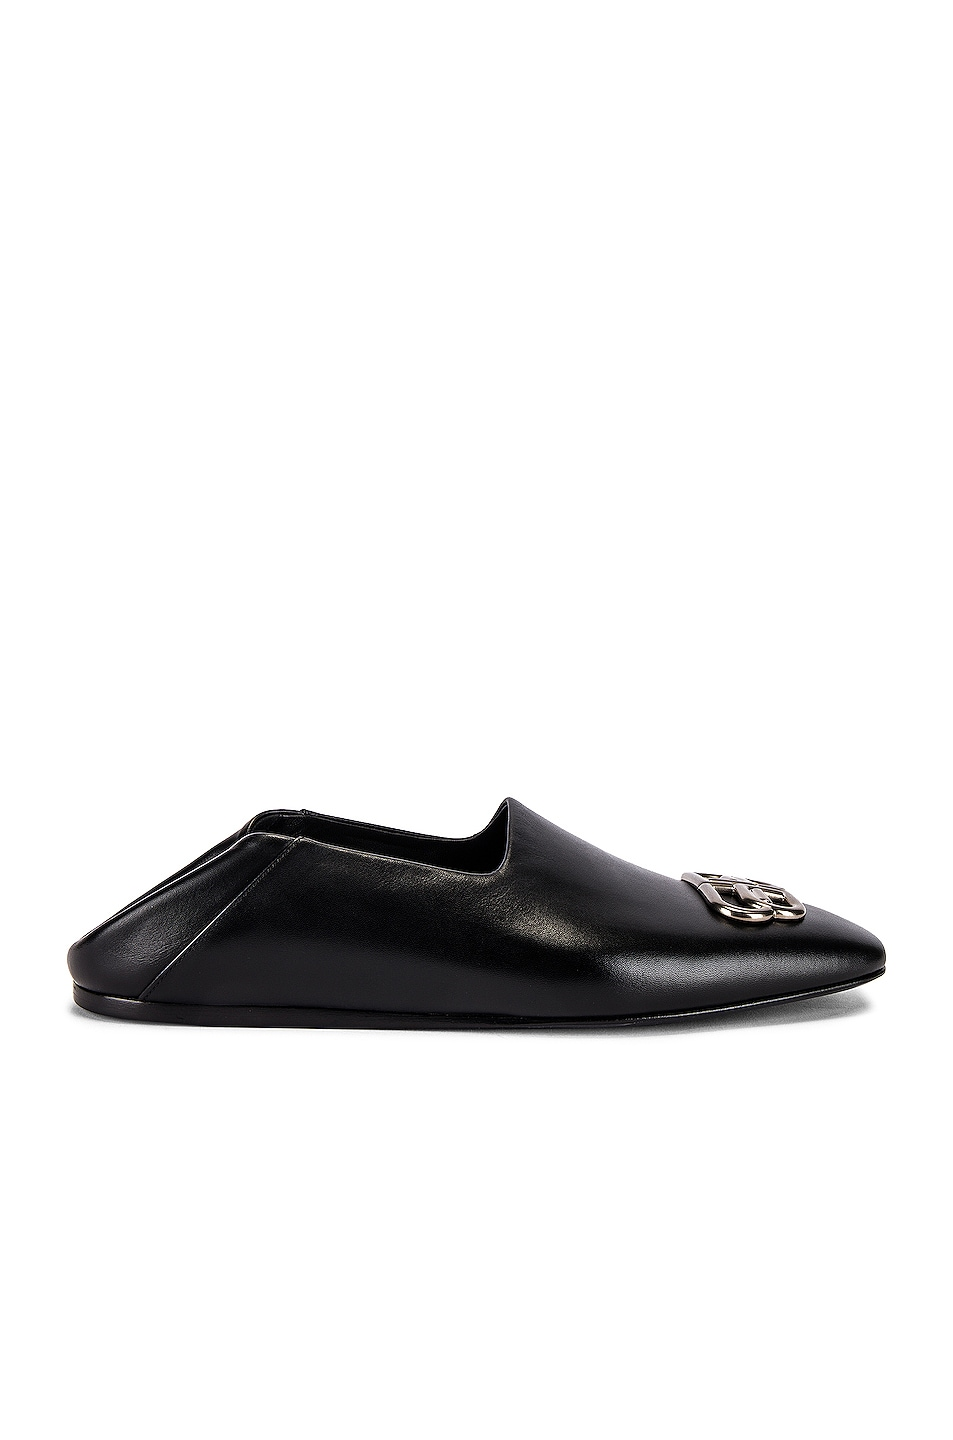 Image 2 of Balenciaga Cosy BB Loafer F005 in Black & Nikel